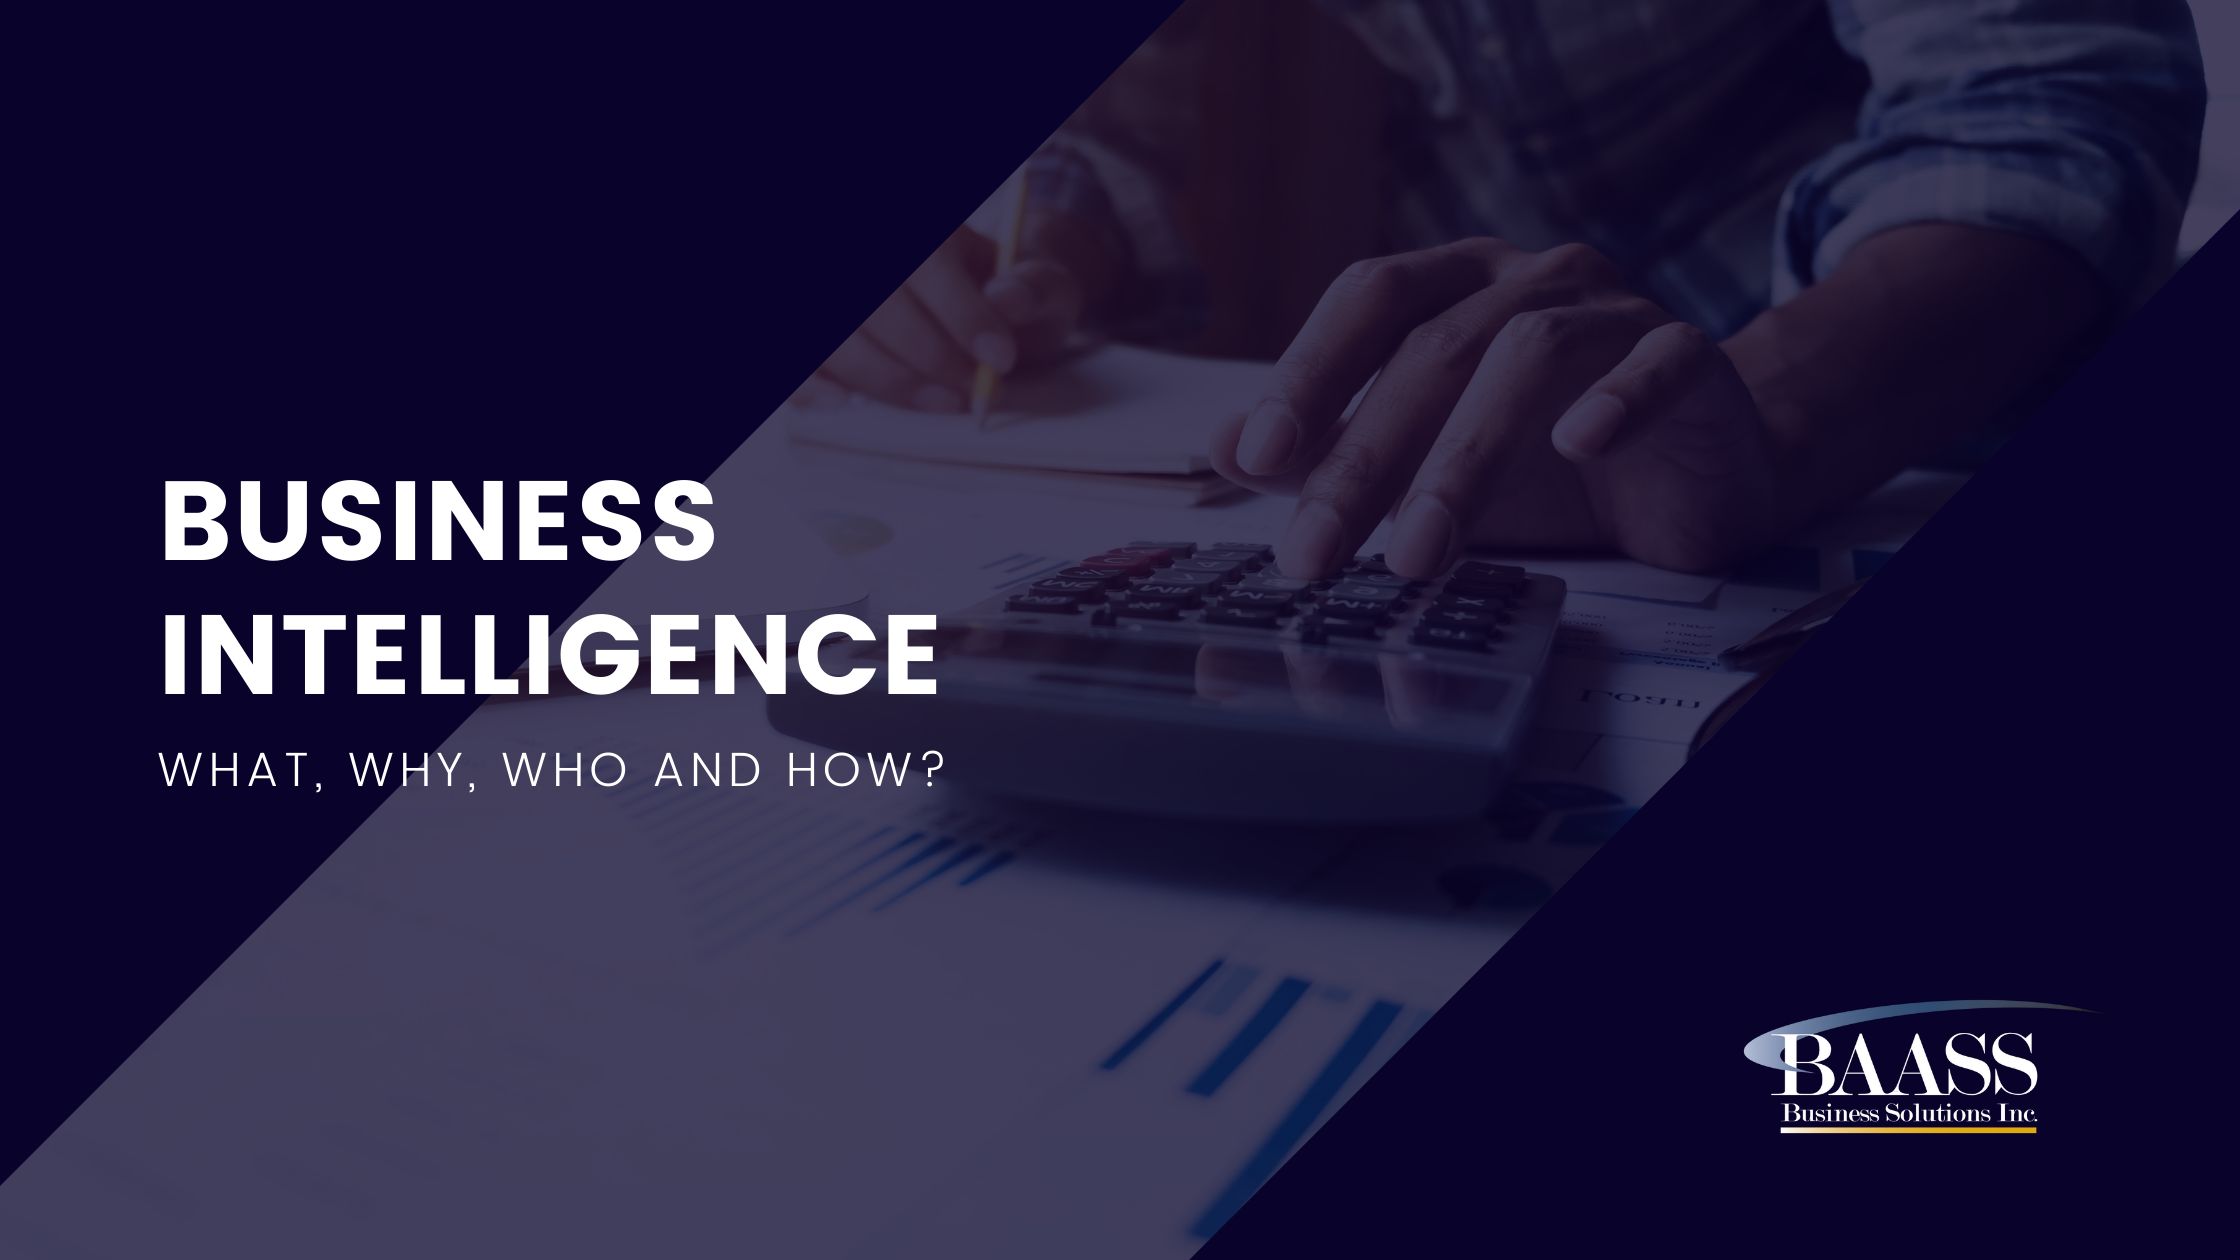 Business Intelligence (BI) - What, Why, Who and How